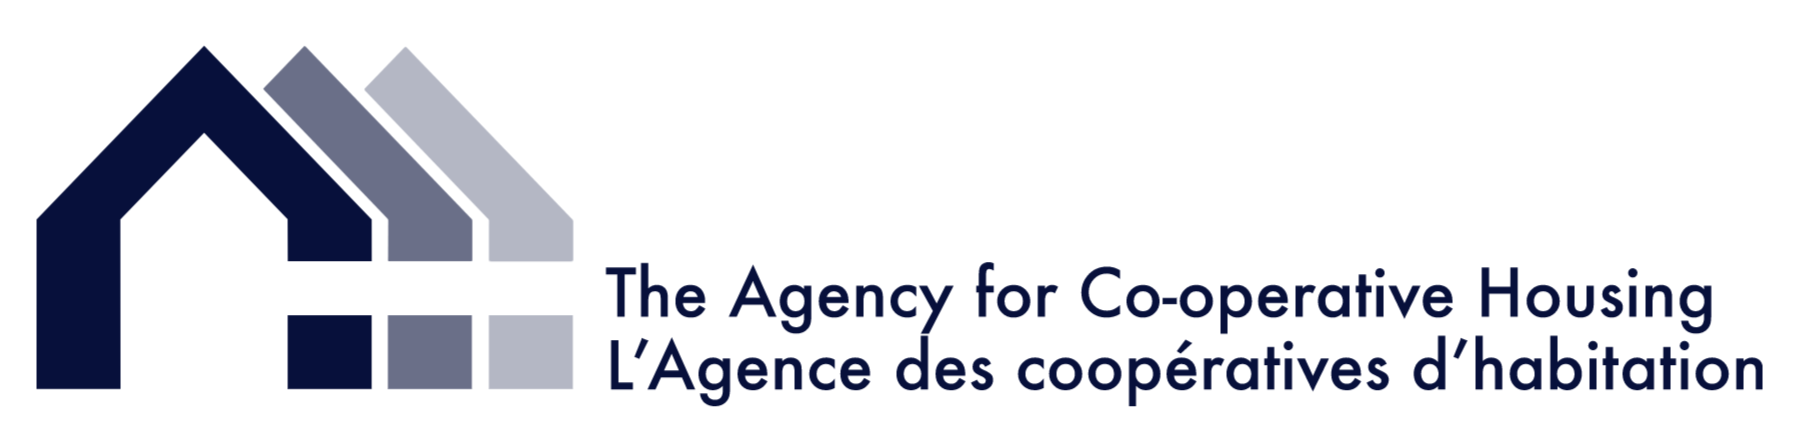 The Agency for Co-operative Housing Logo